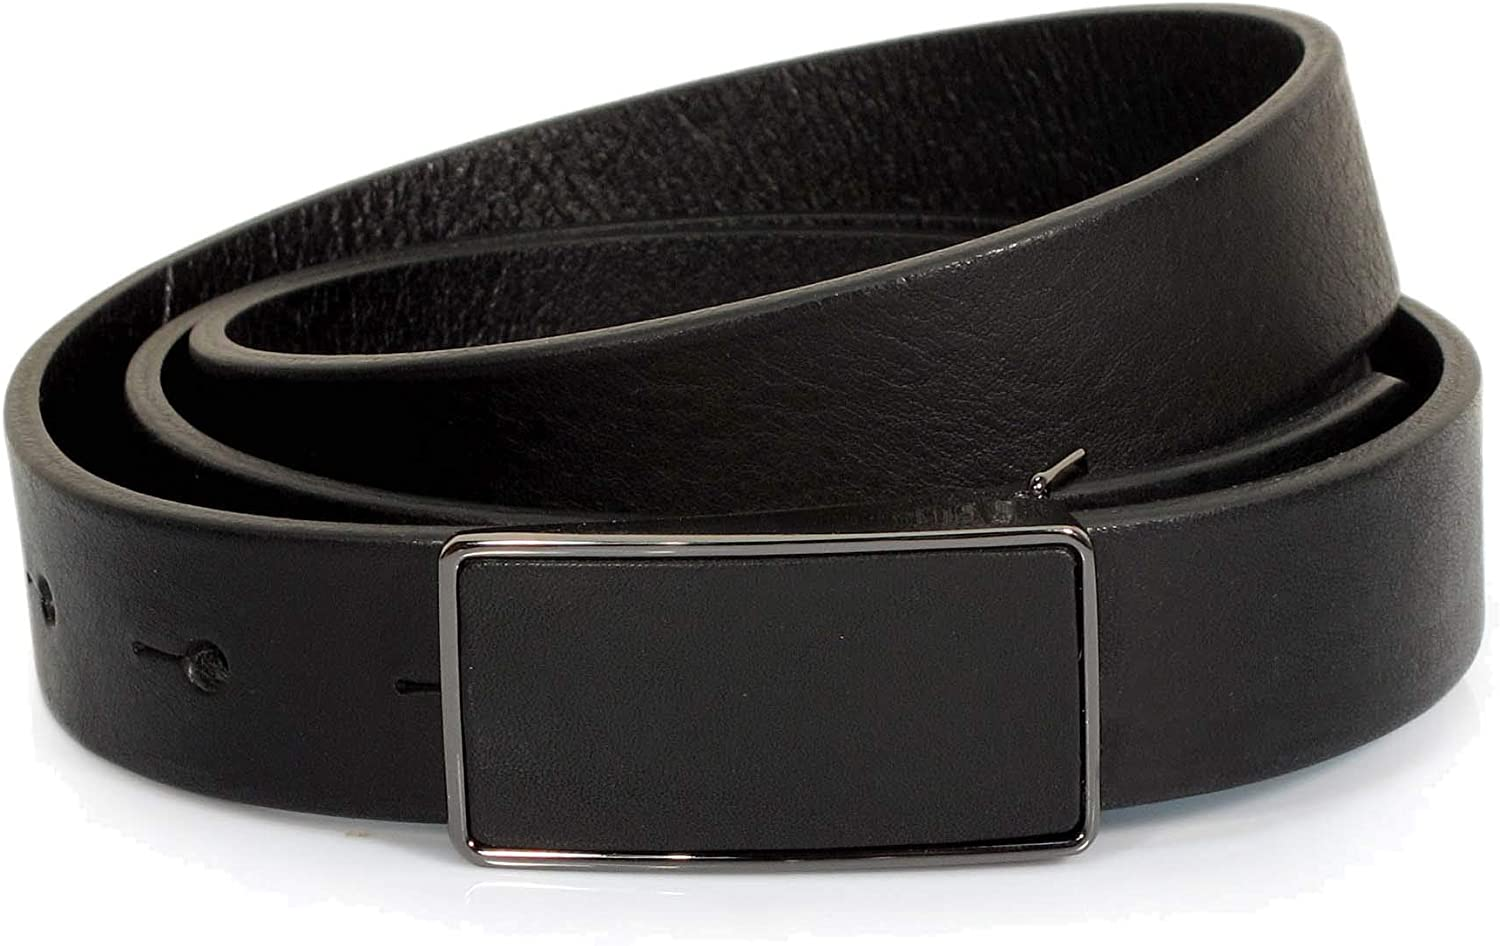 CW7 Womens Real Genuine Leather Black Belt 7//8 Wide S-L Thick Long Casual Jeans